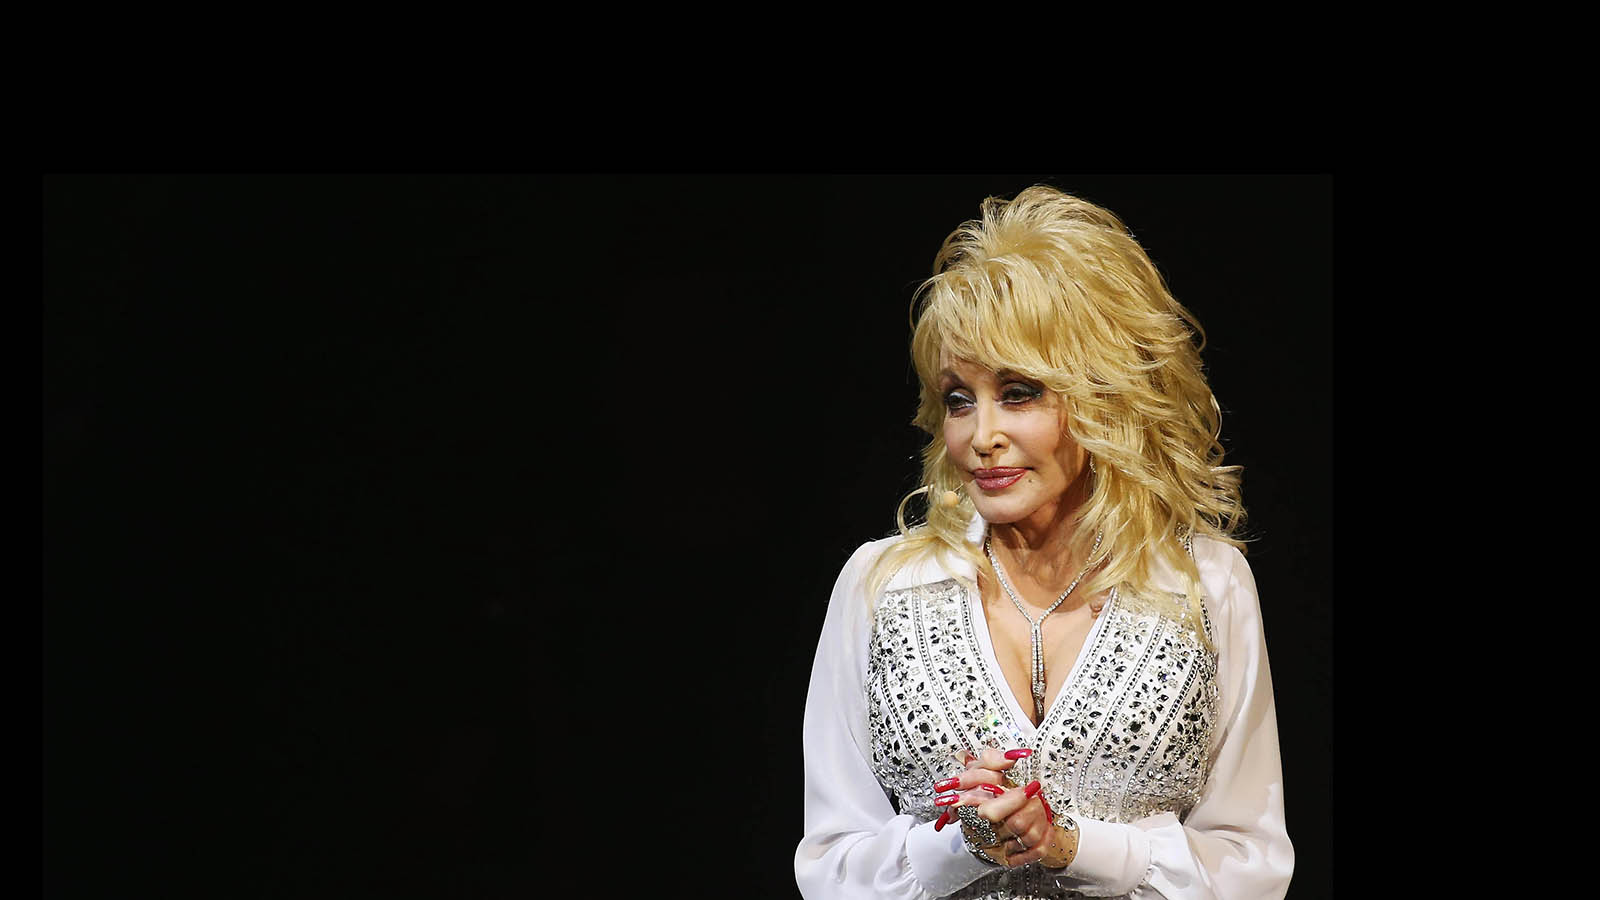 Animated Barbie Wallpaper Download Dolly Parton Wallpaper Gallery